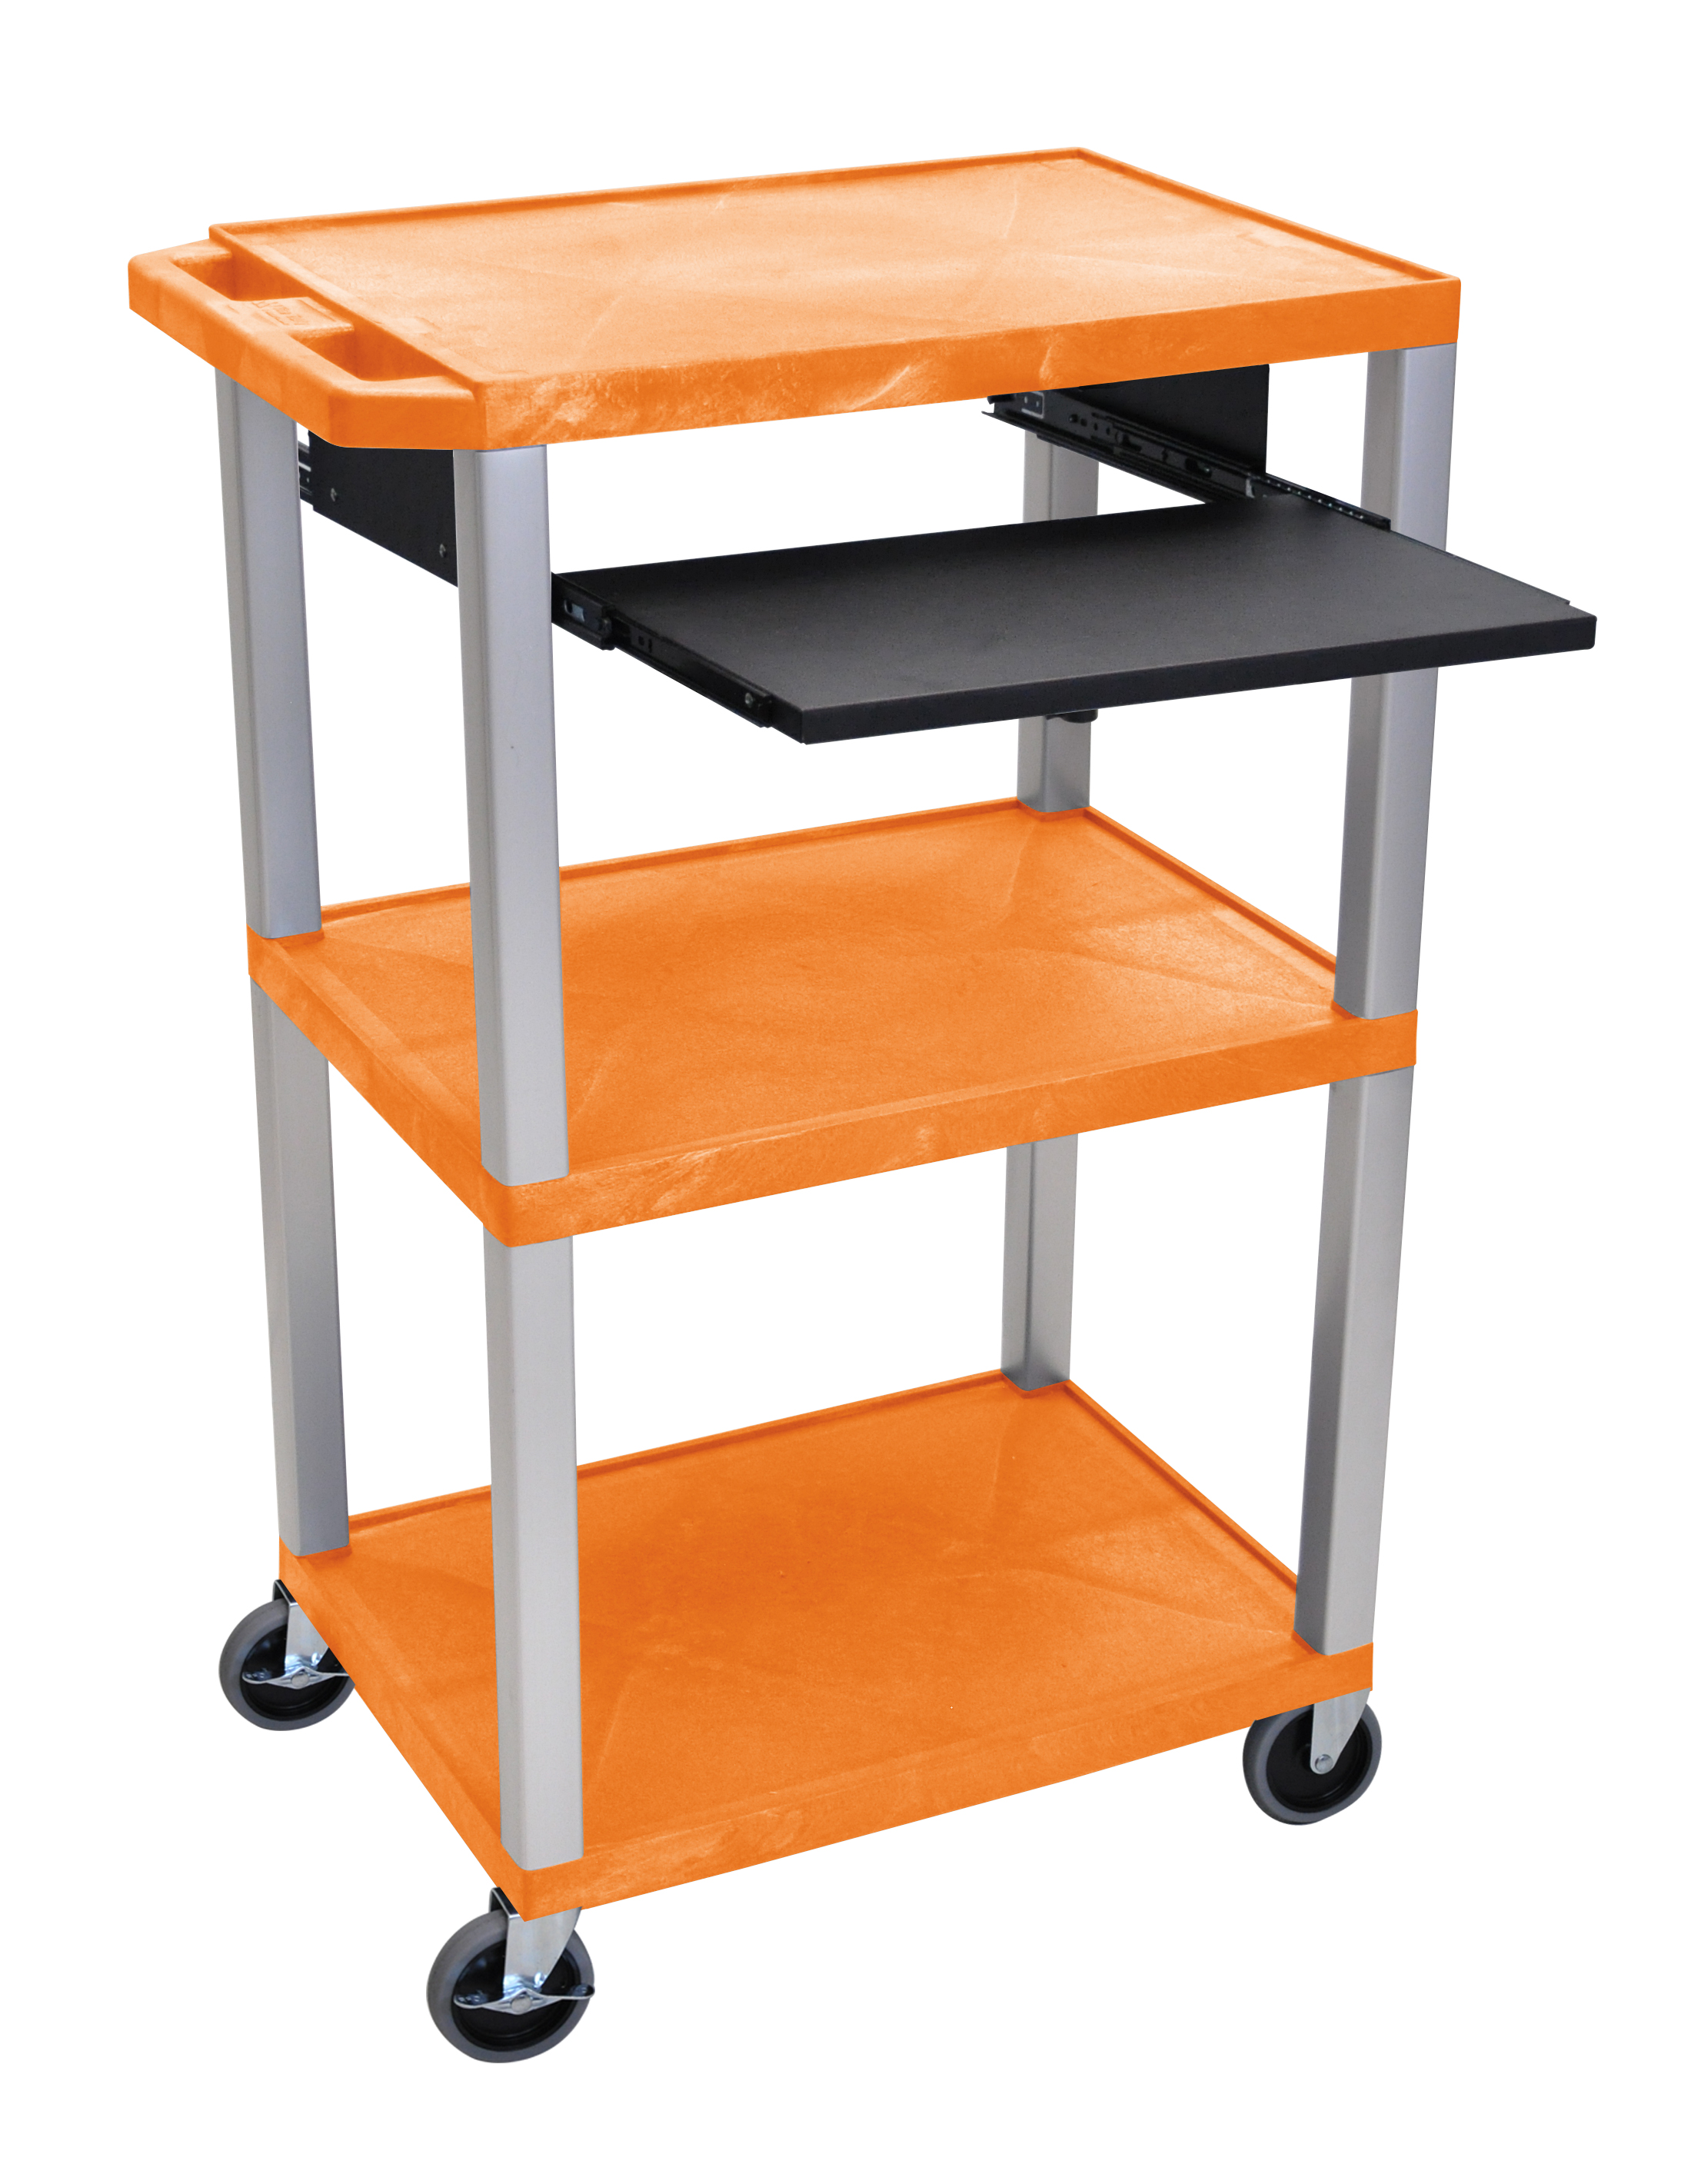 Offex Presentation Cart with Open Shelves and Pull Out Tray Orange and Nickel